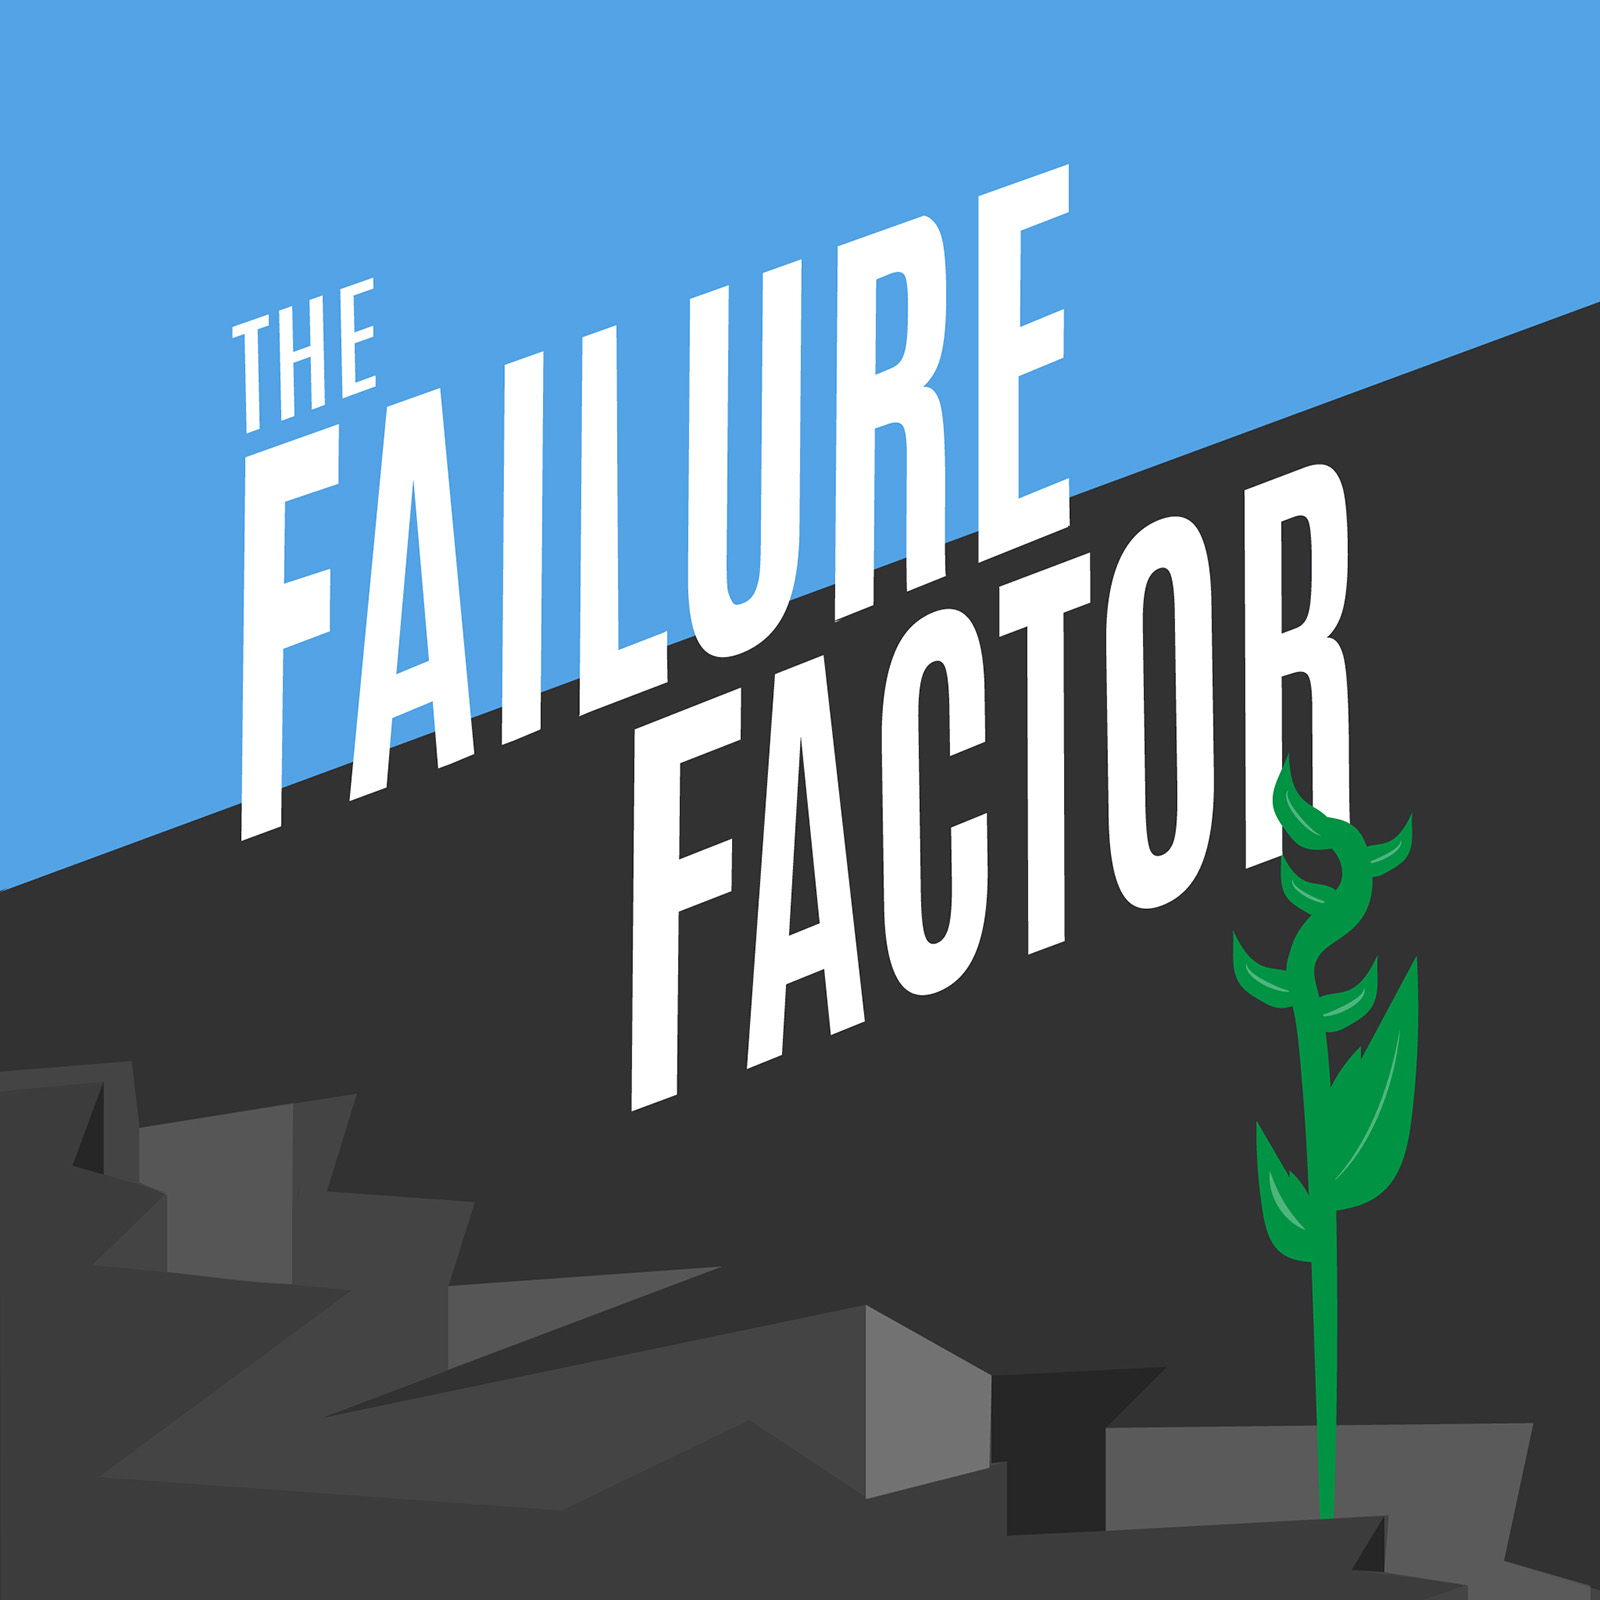 Artwork for The Failure Factor Episode 29: The League Dating App Founder Amanda Bradford on Having Difficult Conversations And Getting Comfortable With Rejection